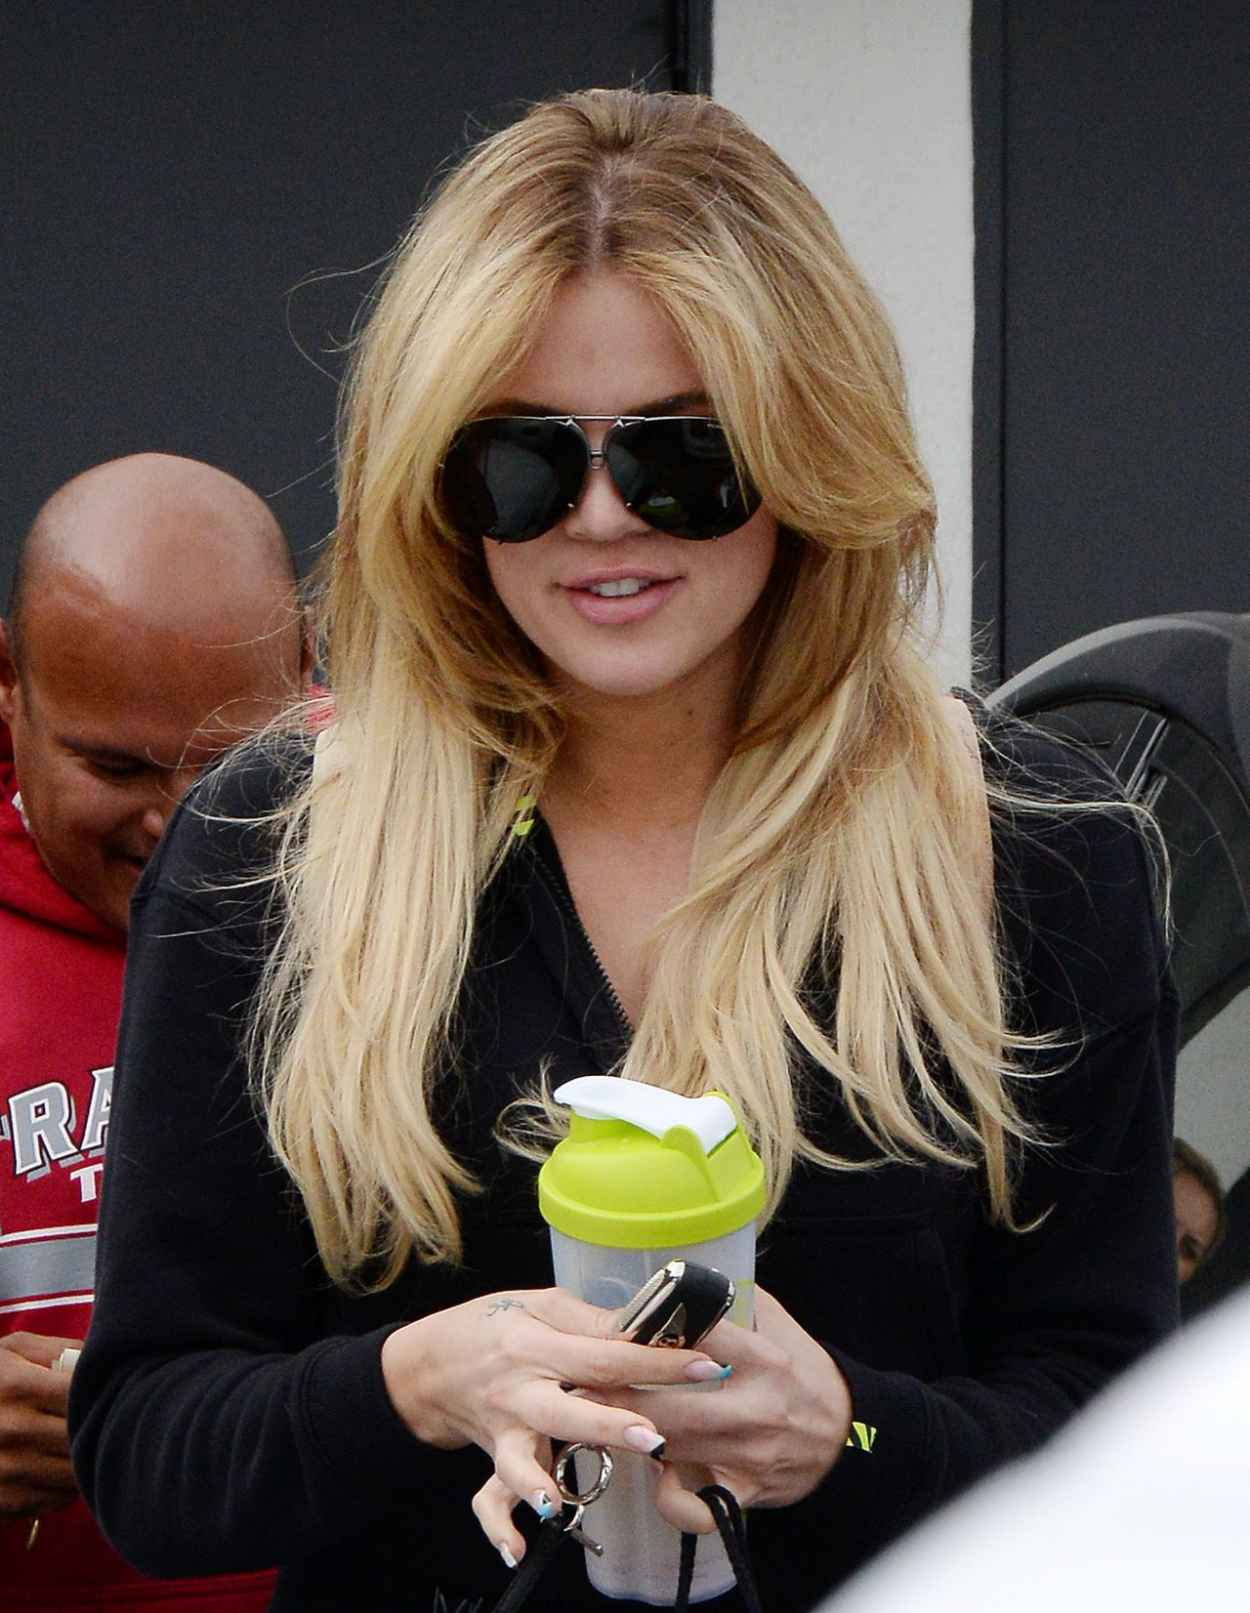 Khloe Kardashian - Leaving a Hair Salon After Getting Her Hair Done in Beverly Hills, June 2015-4